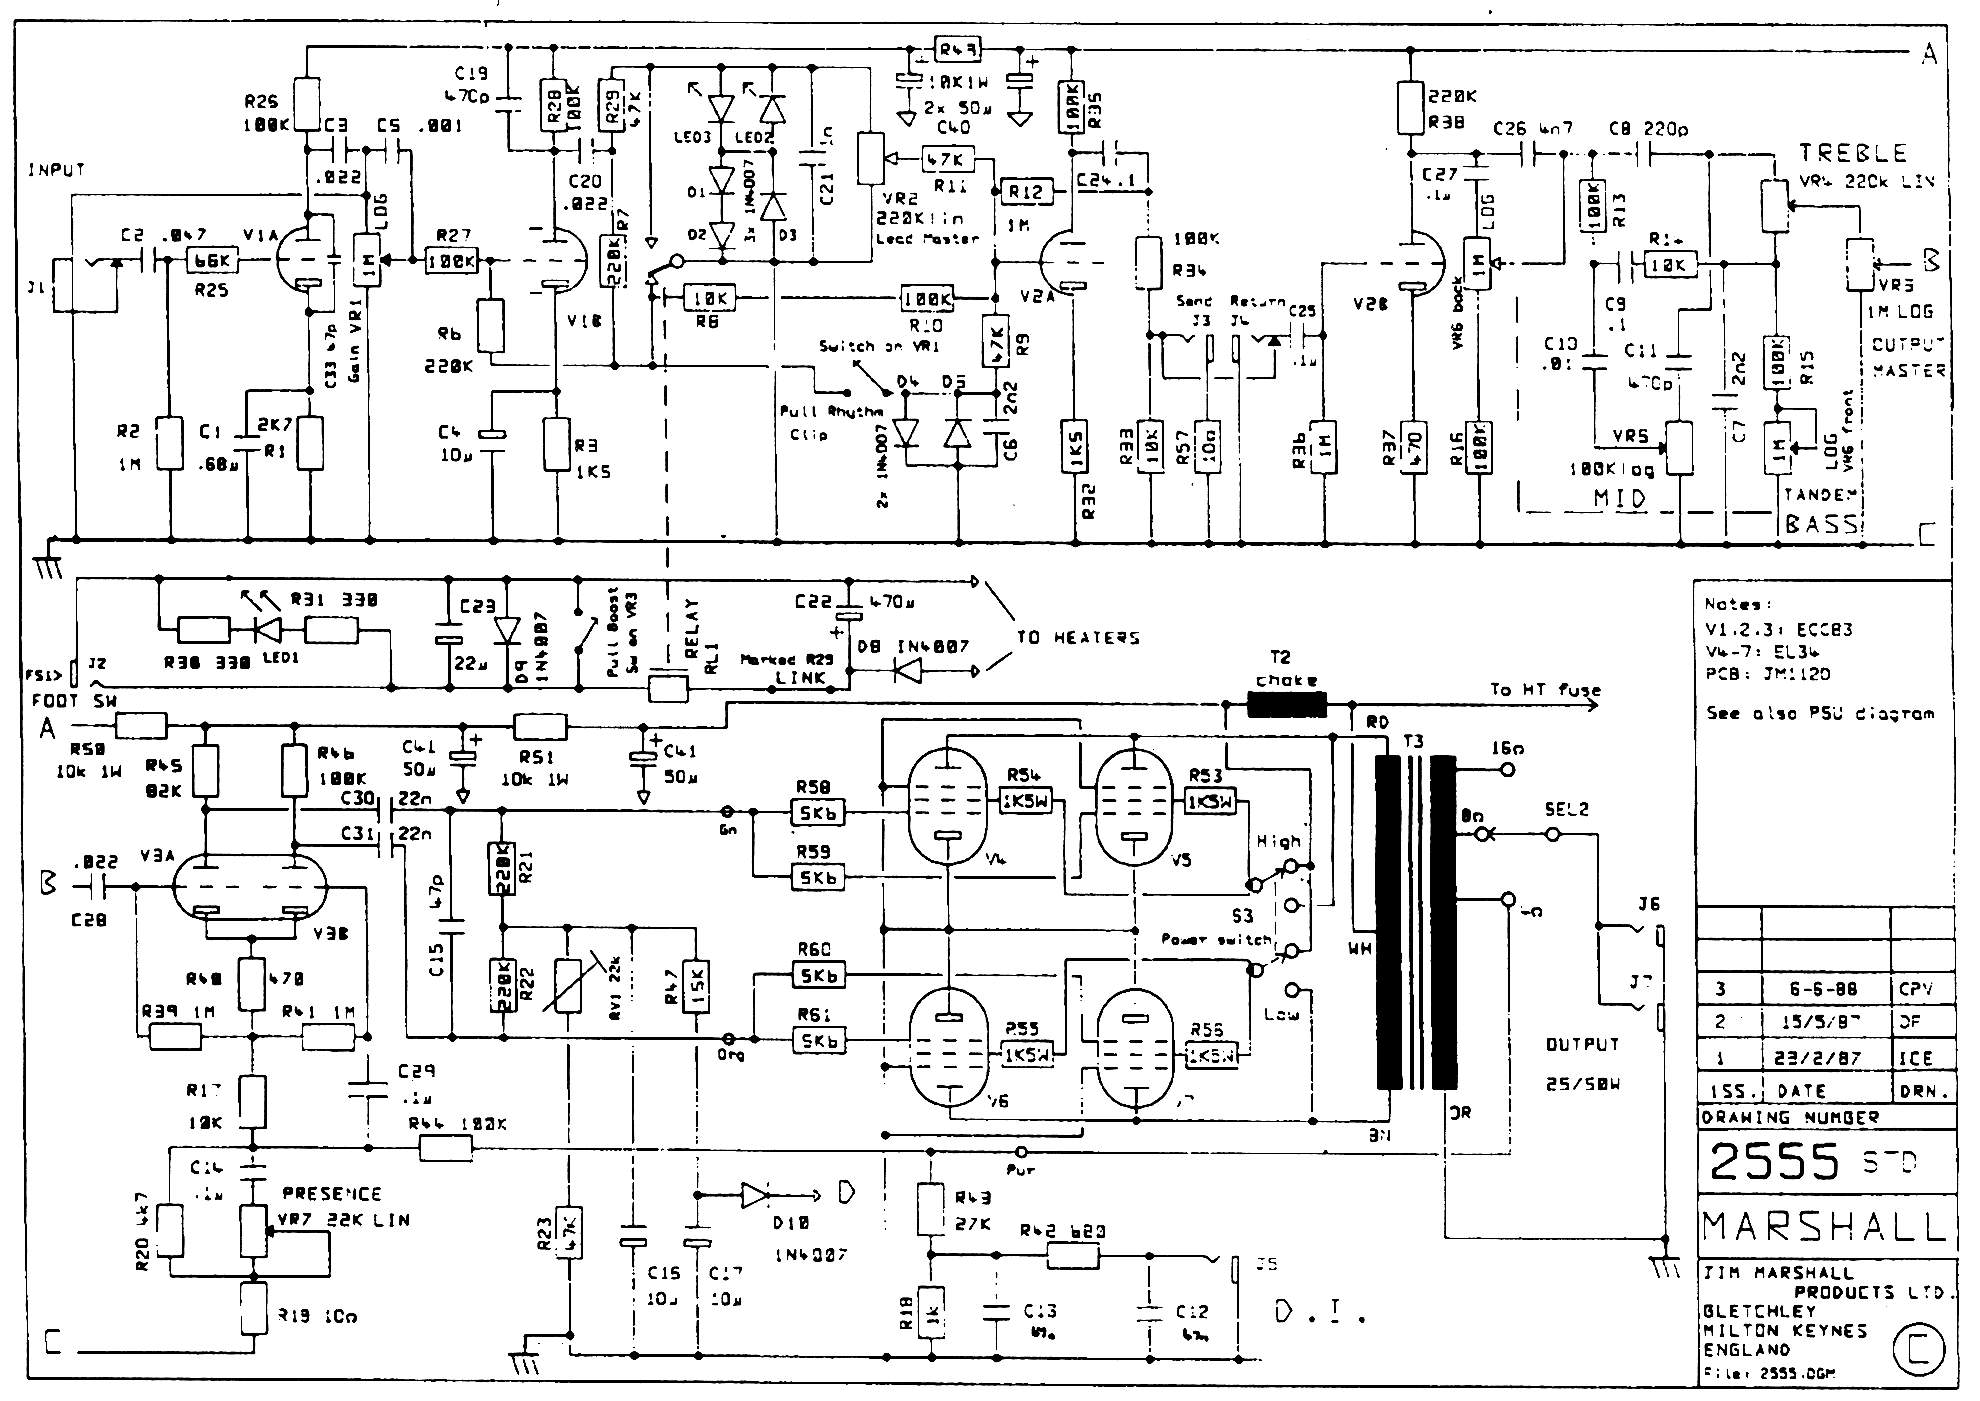 Jcm800 2204 Schematic – Billy Knight